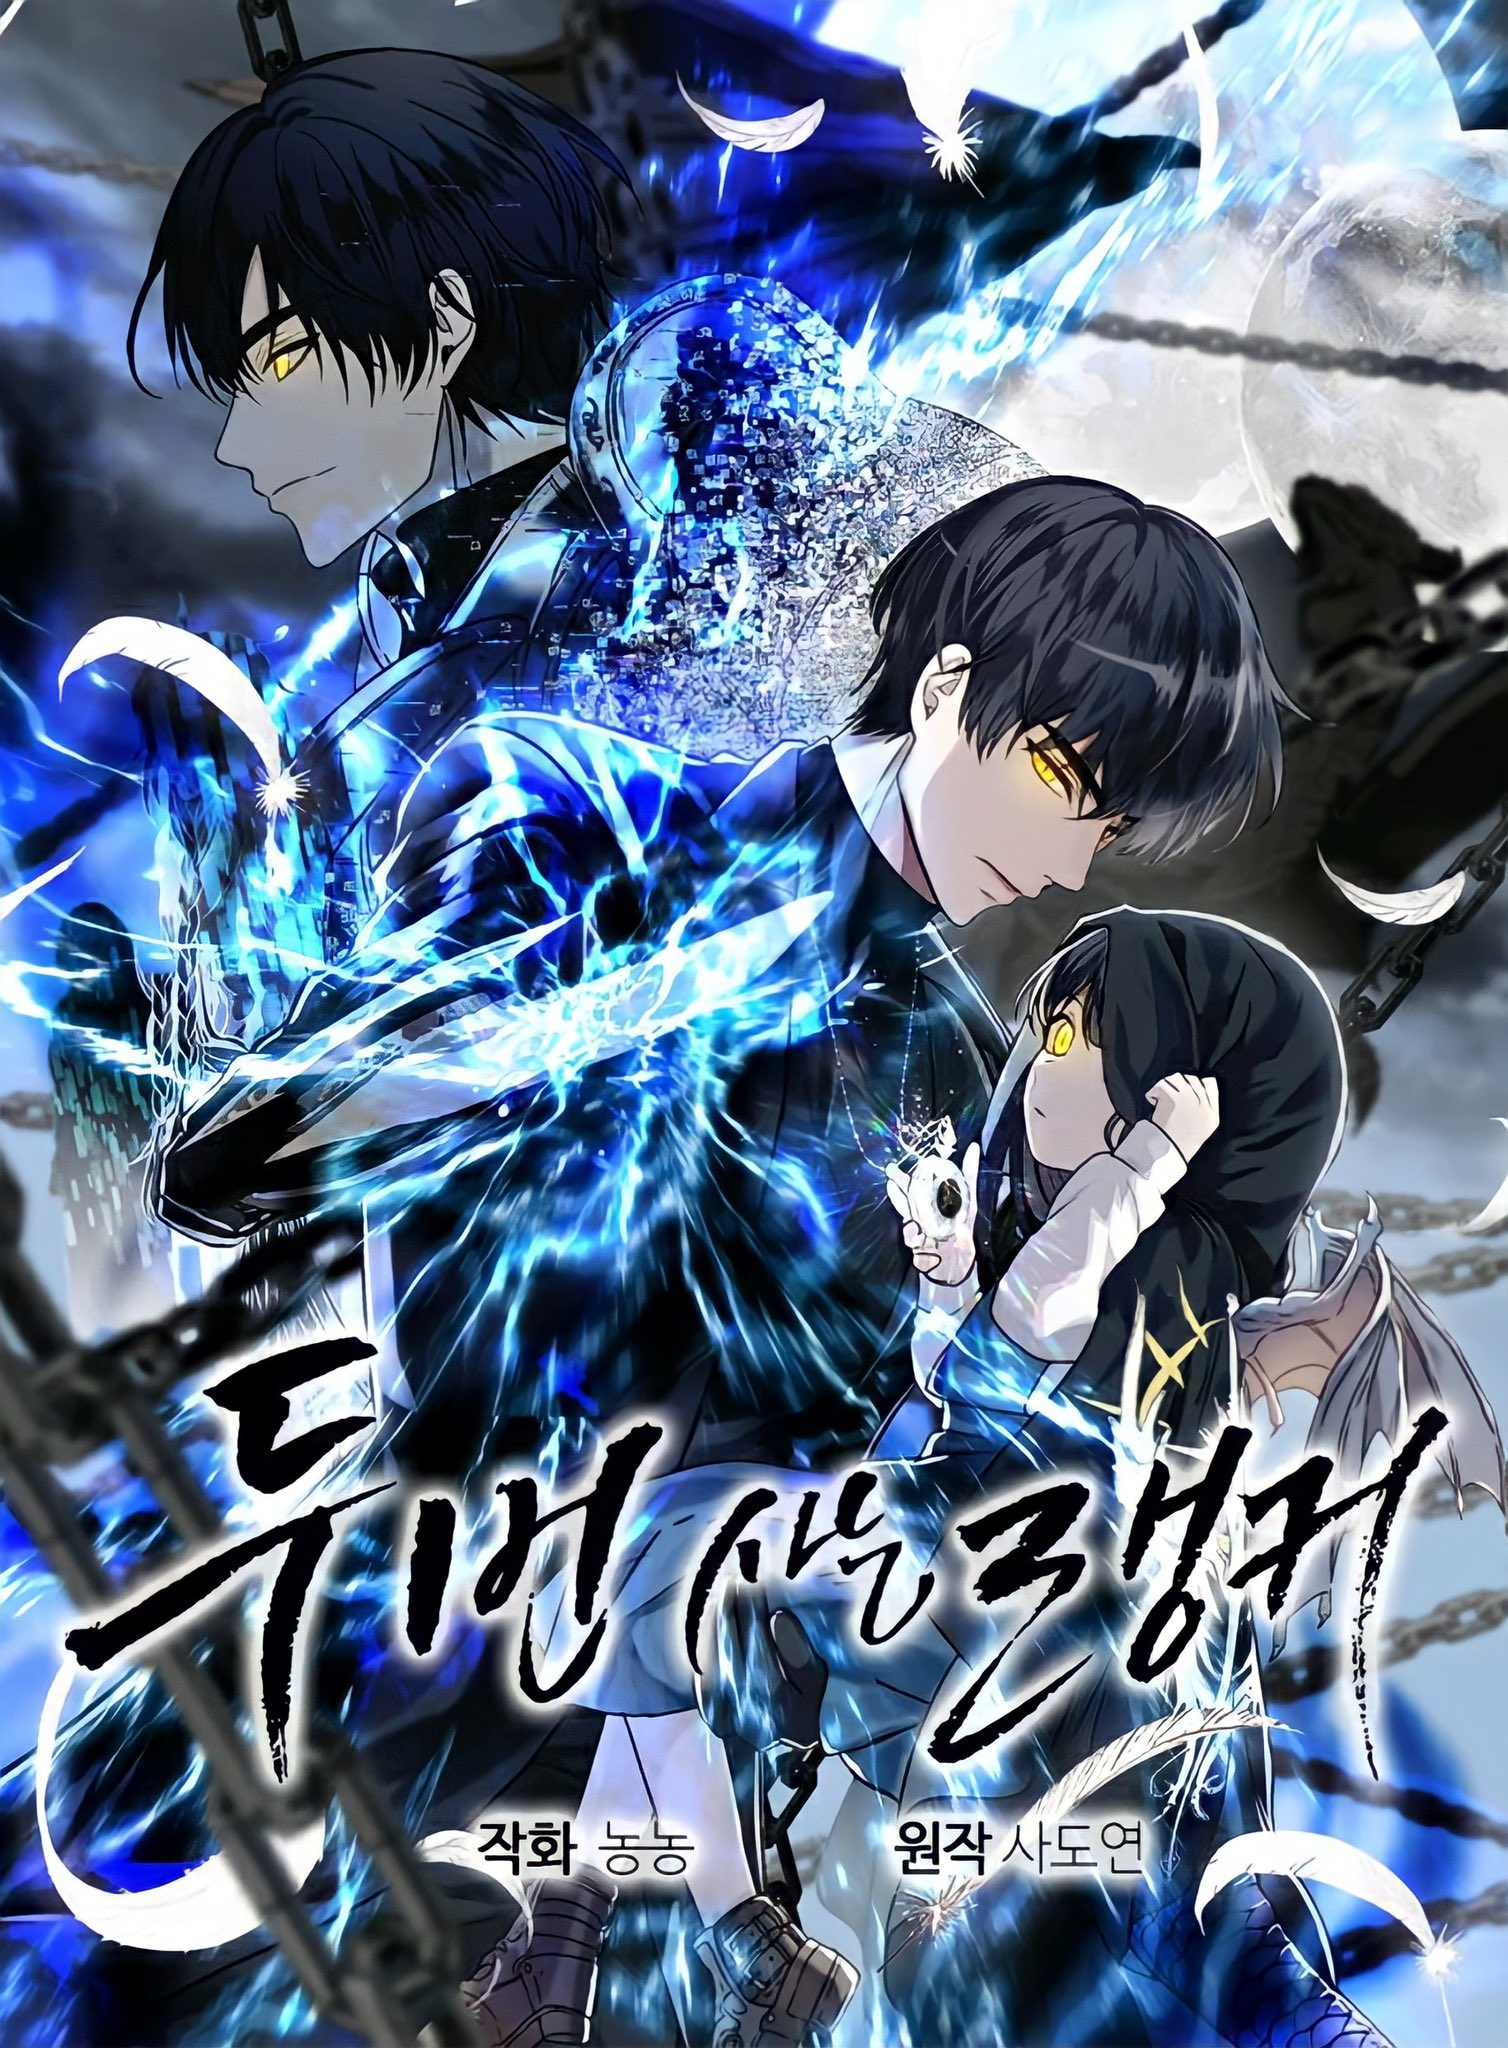 Read Manga Online Second Life Ranker Chapter 95 : Eager To Know The Upcoming Spoiler and Twist?